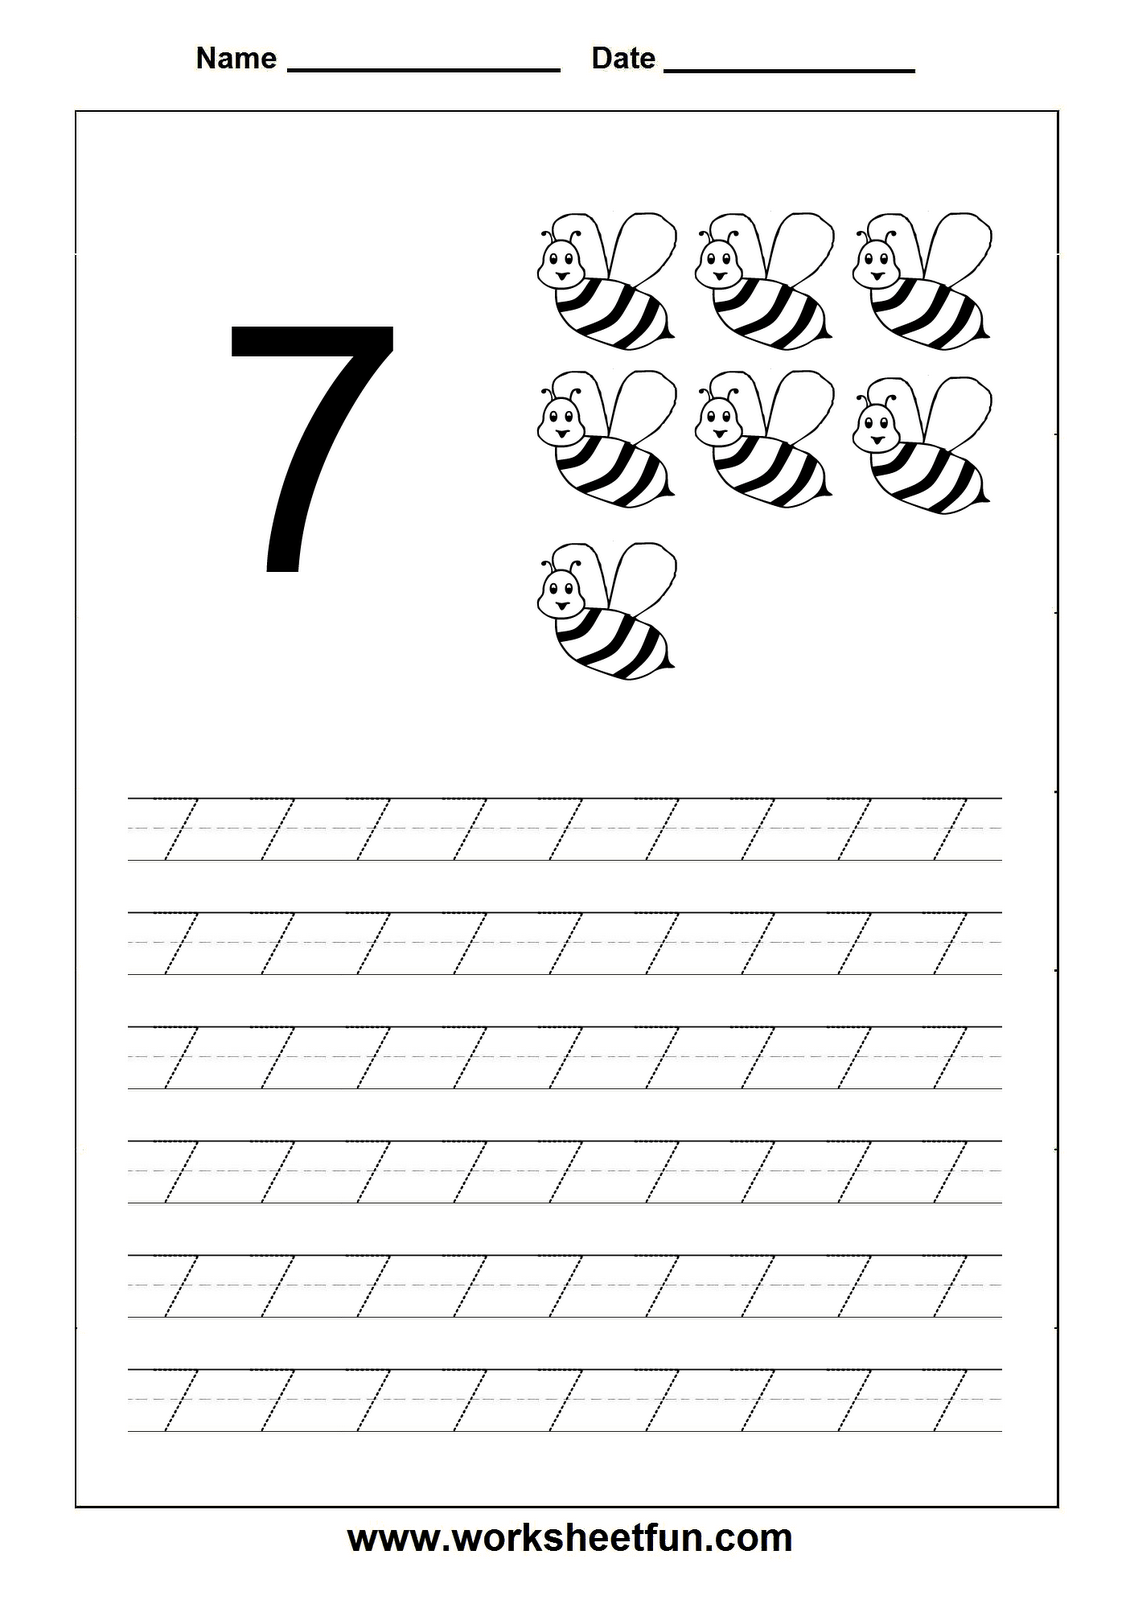 Number Tracing Worksheet